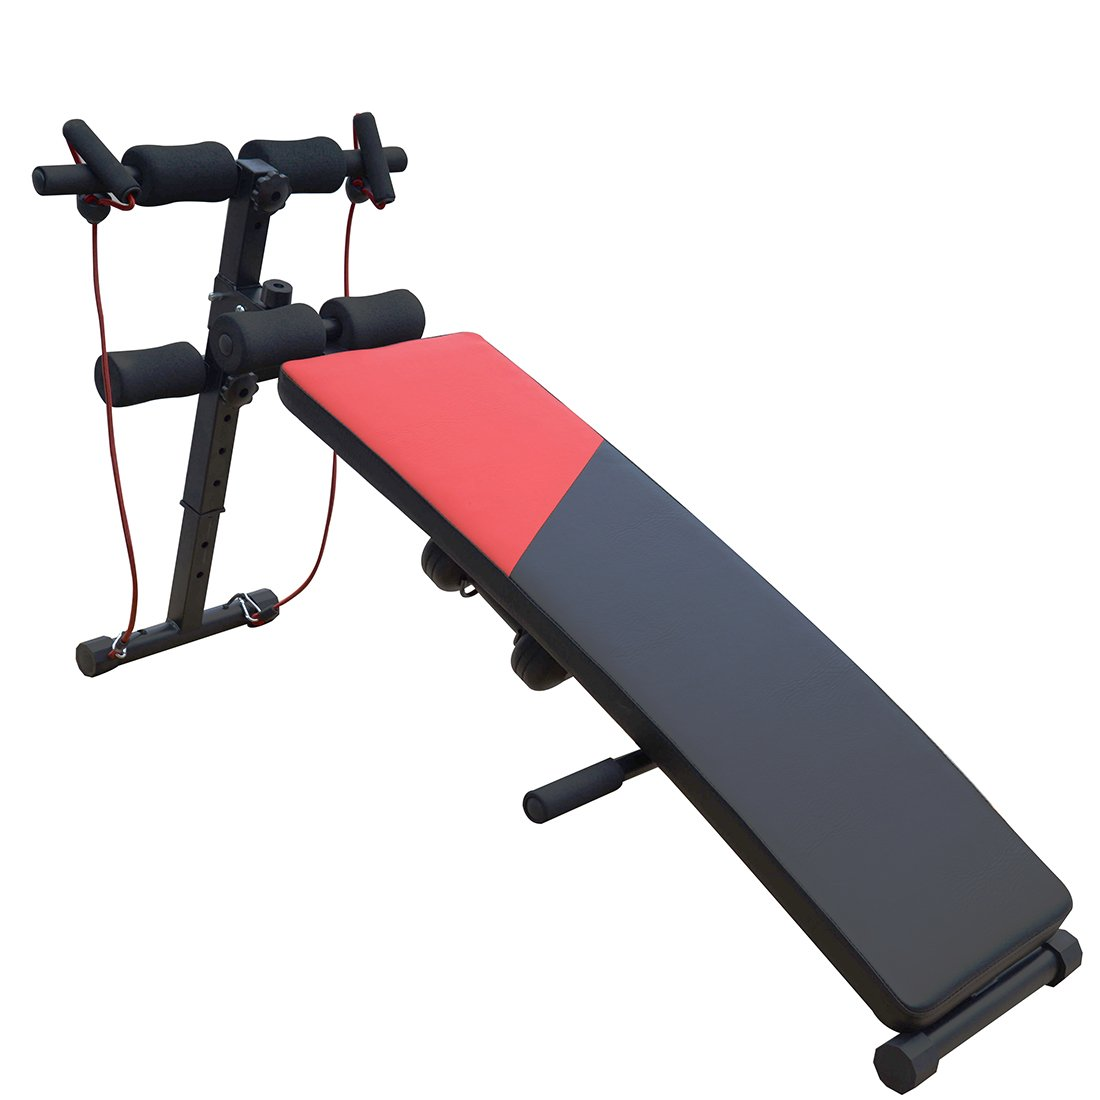 Cyber Monday Special ! Adjustable Decline Sit up Bench Ab Crunch Board with Dumbbells and a Resistance by Fitleader